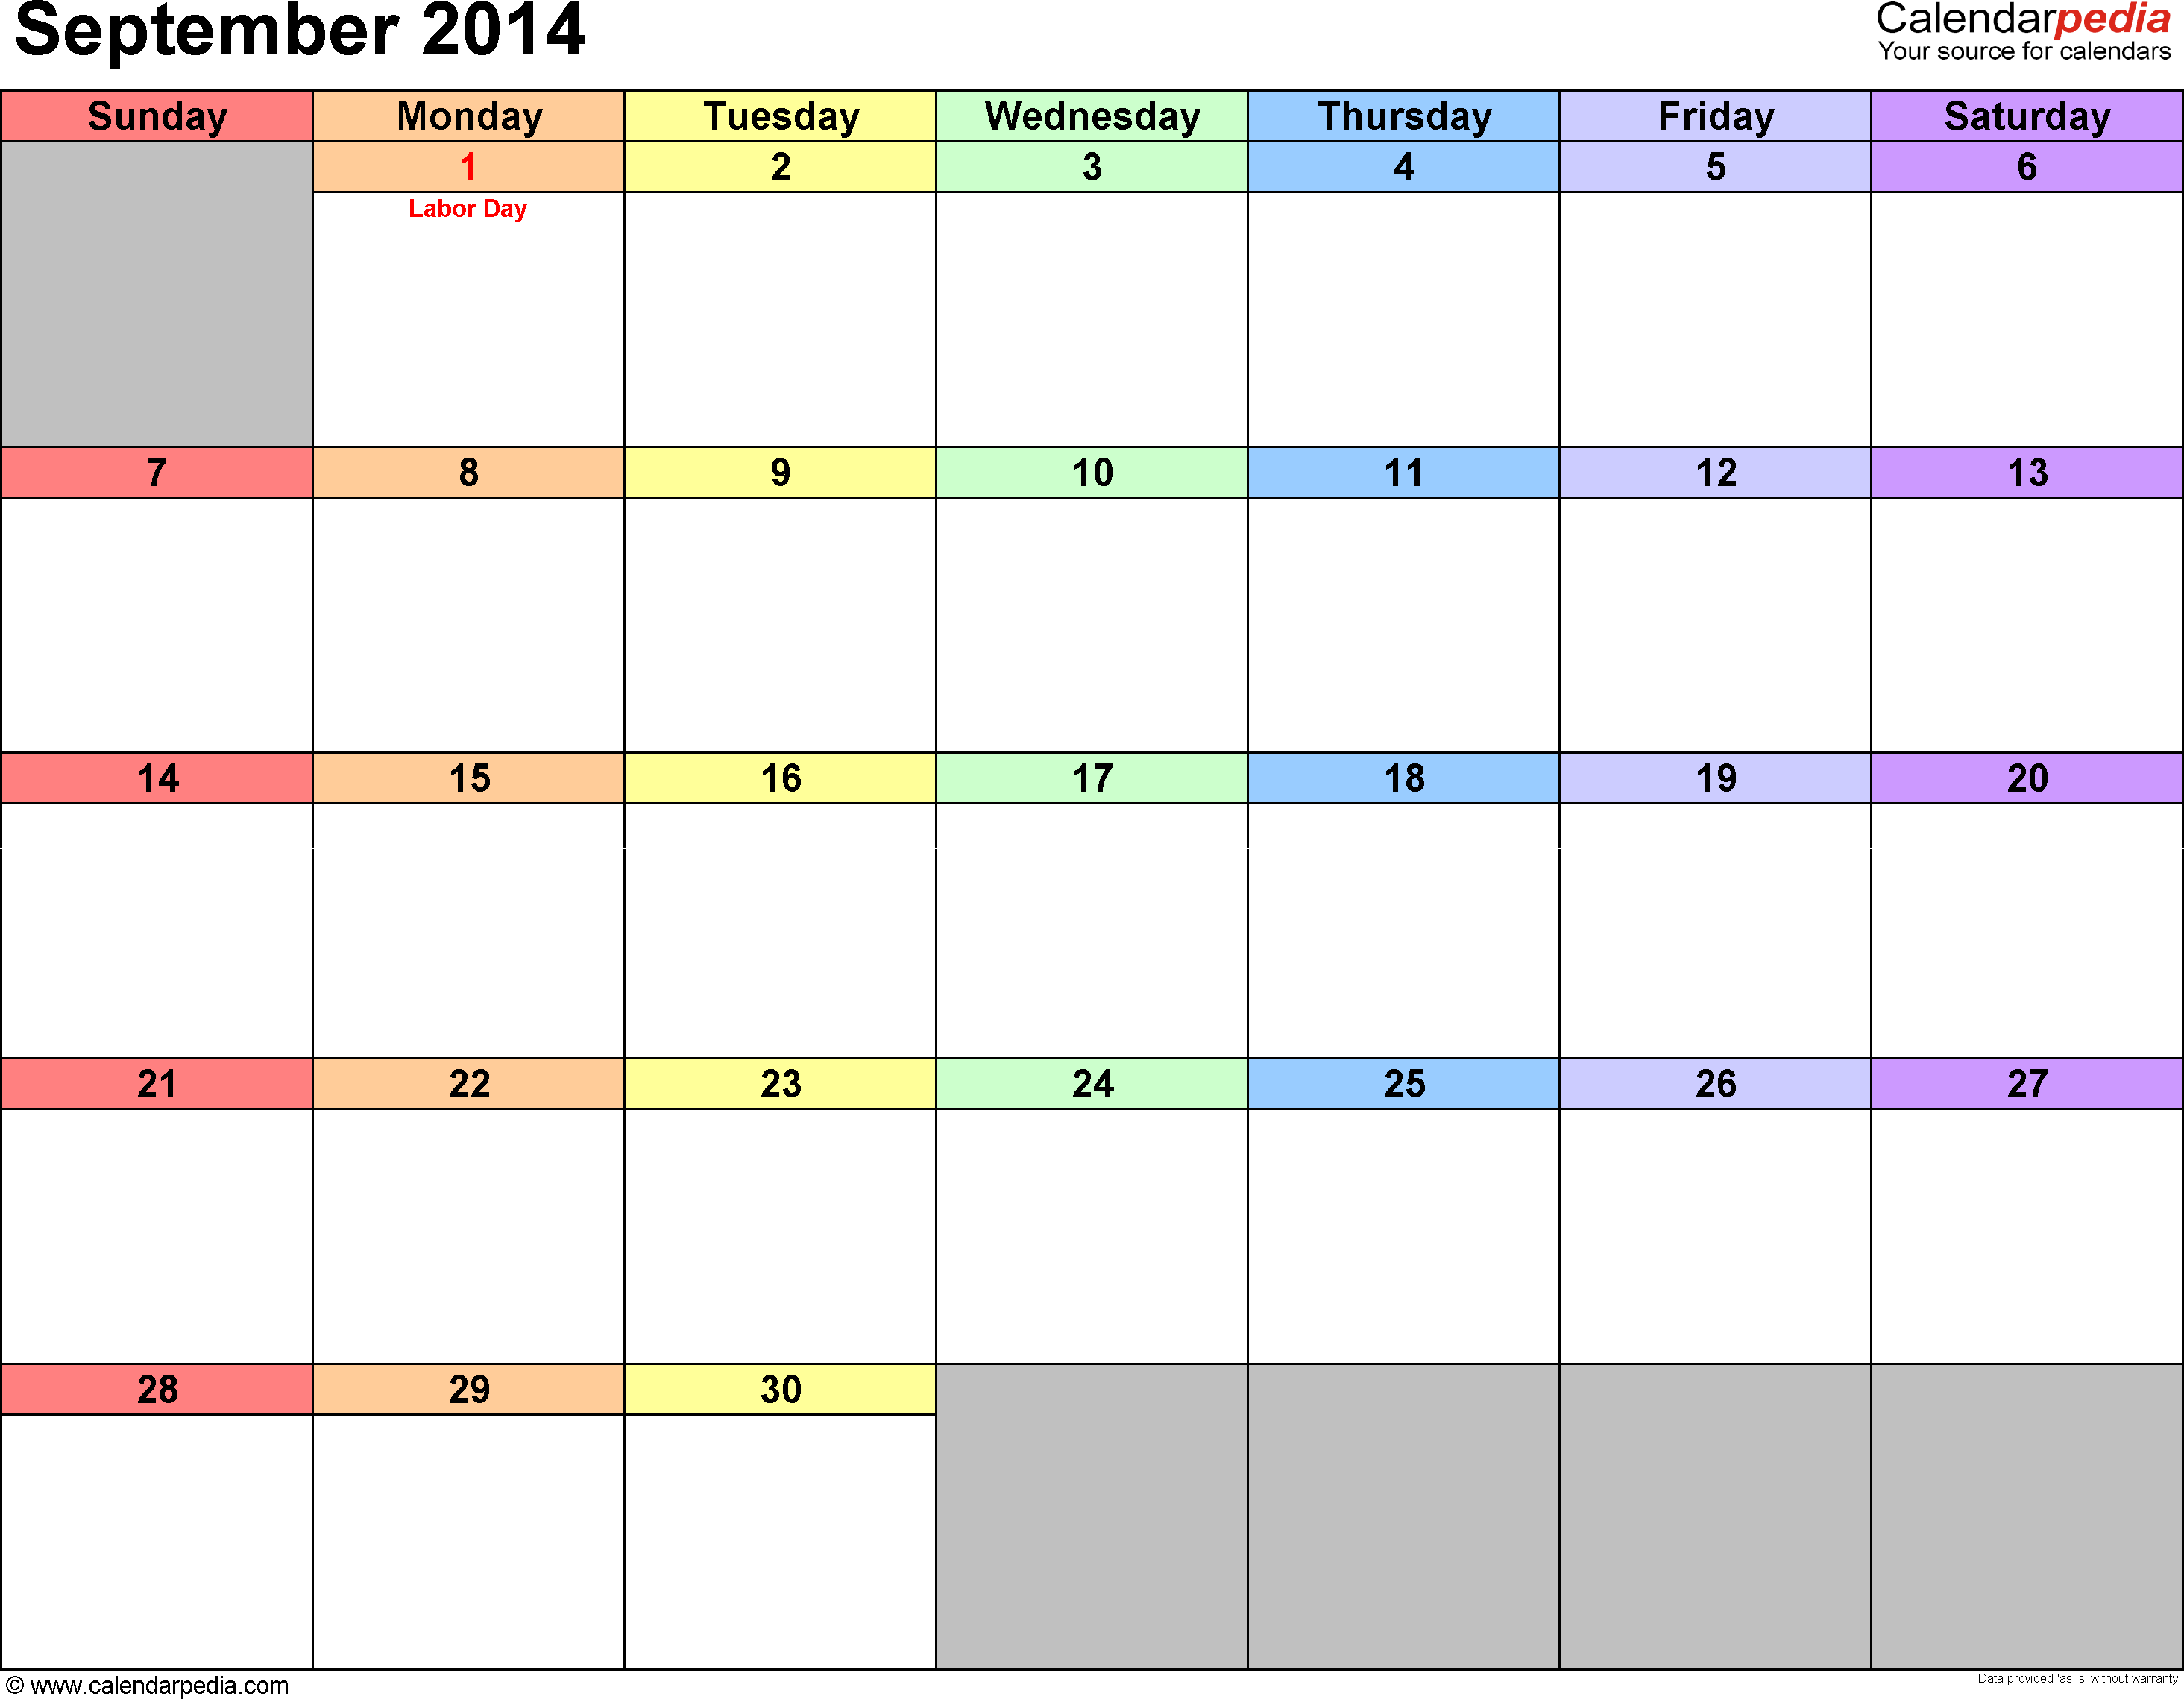 September 2014 calendar, landscape orientation, 'rainbow calendar', available as printable templates for Word, Excel and PDF